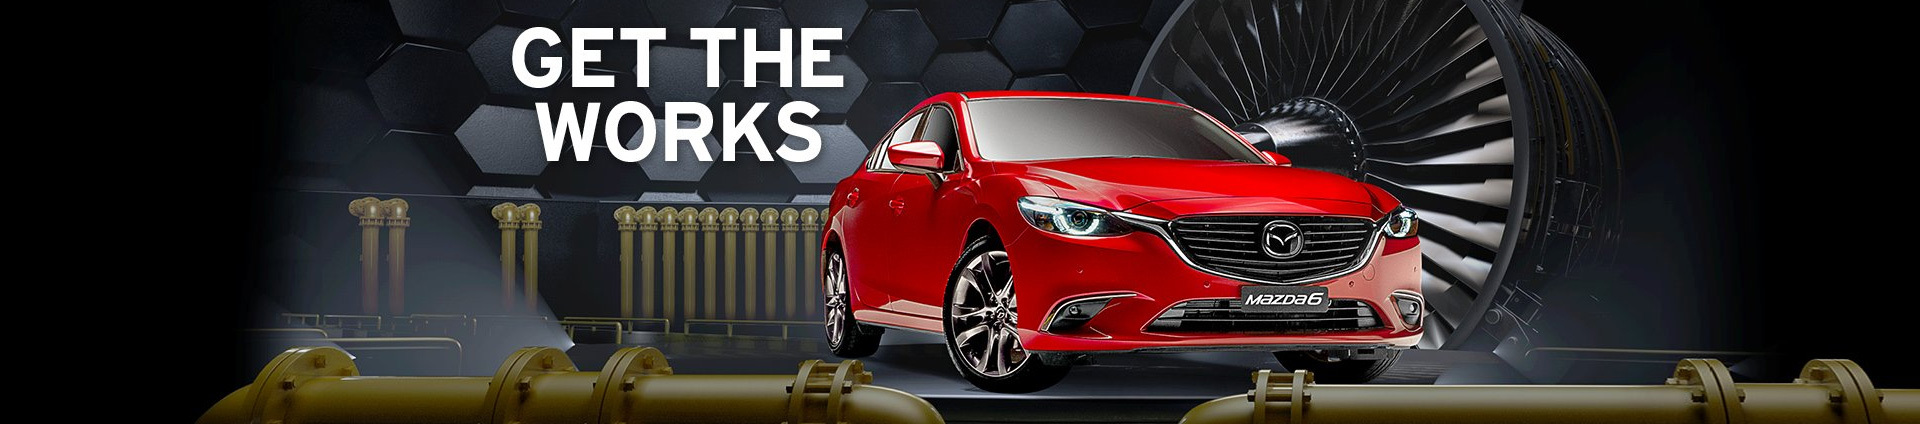 Mazda National Offer - Get The Works